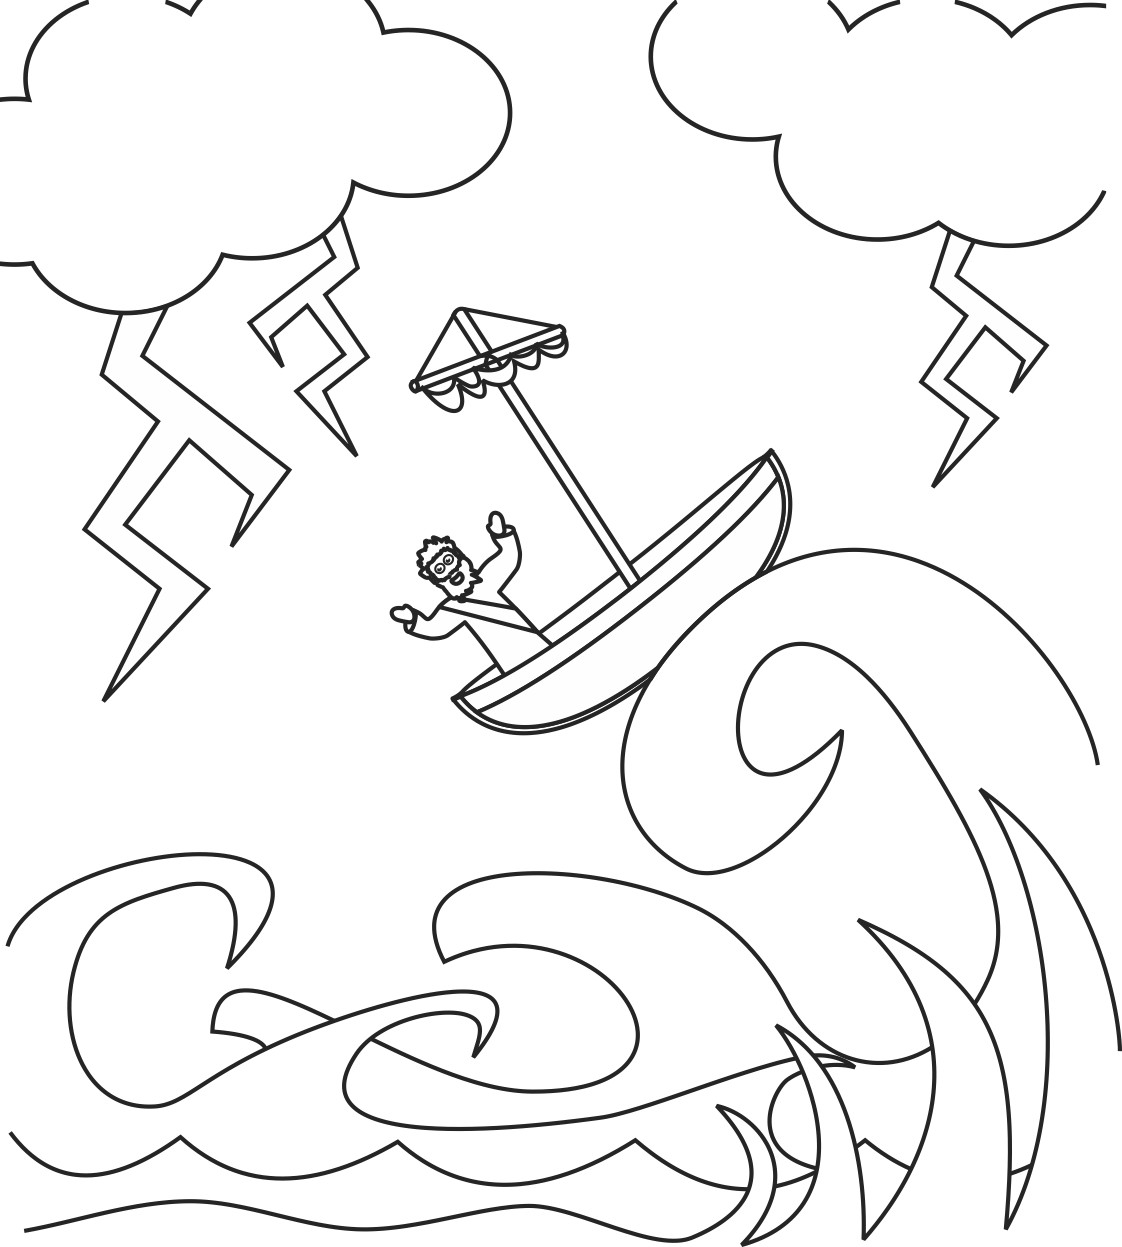 Jackson Storm Coloring Page